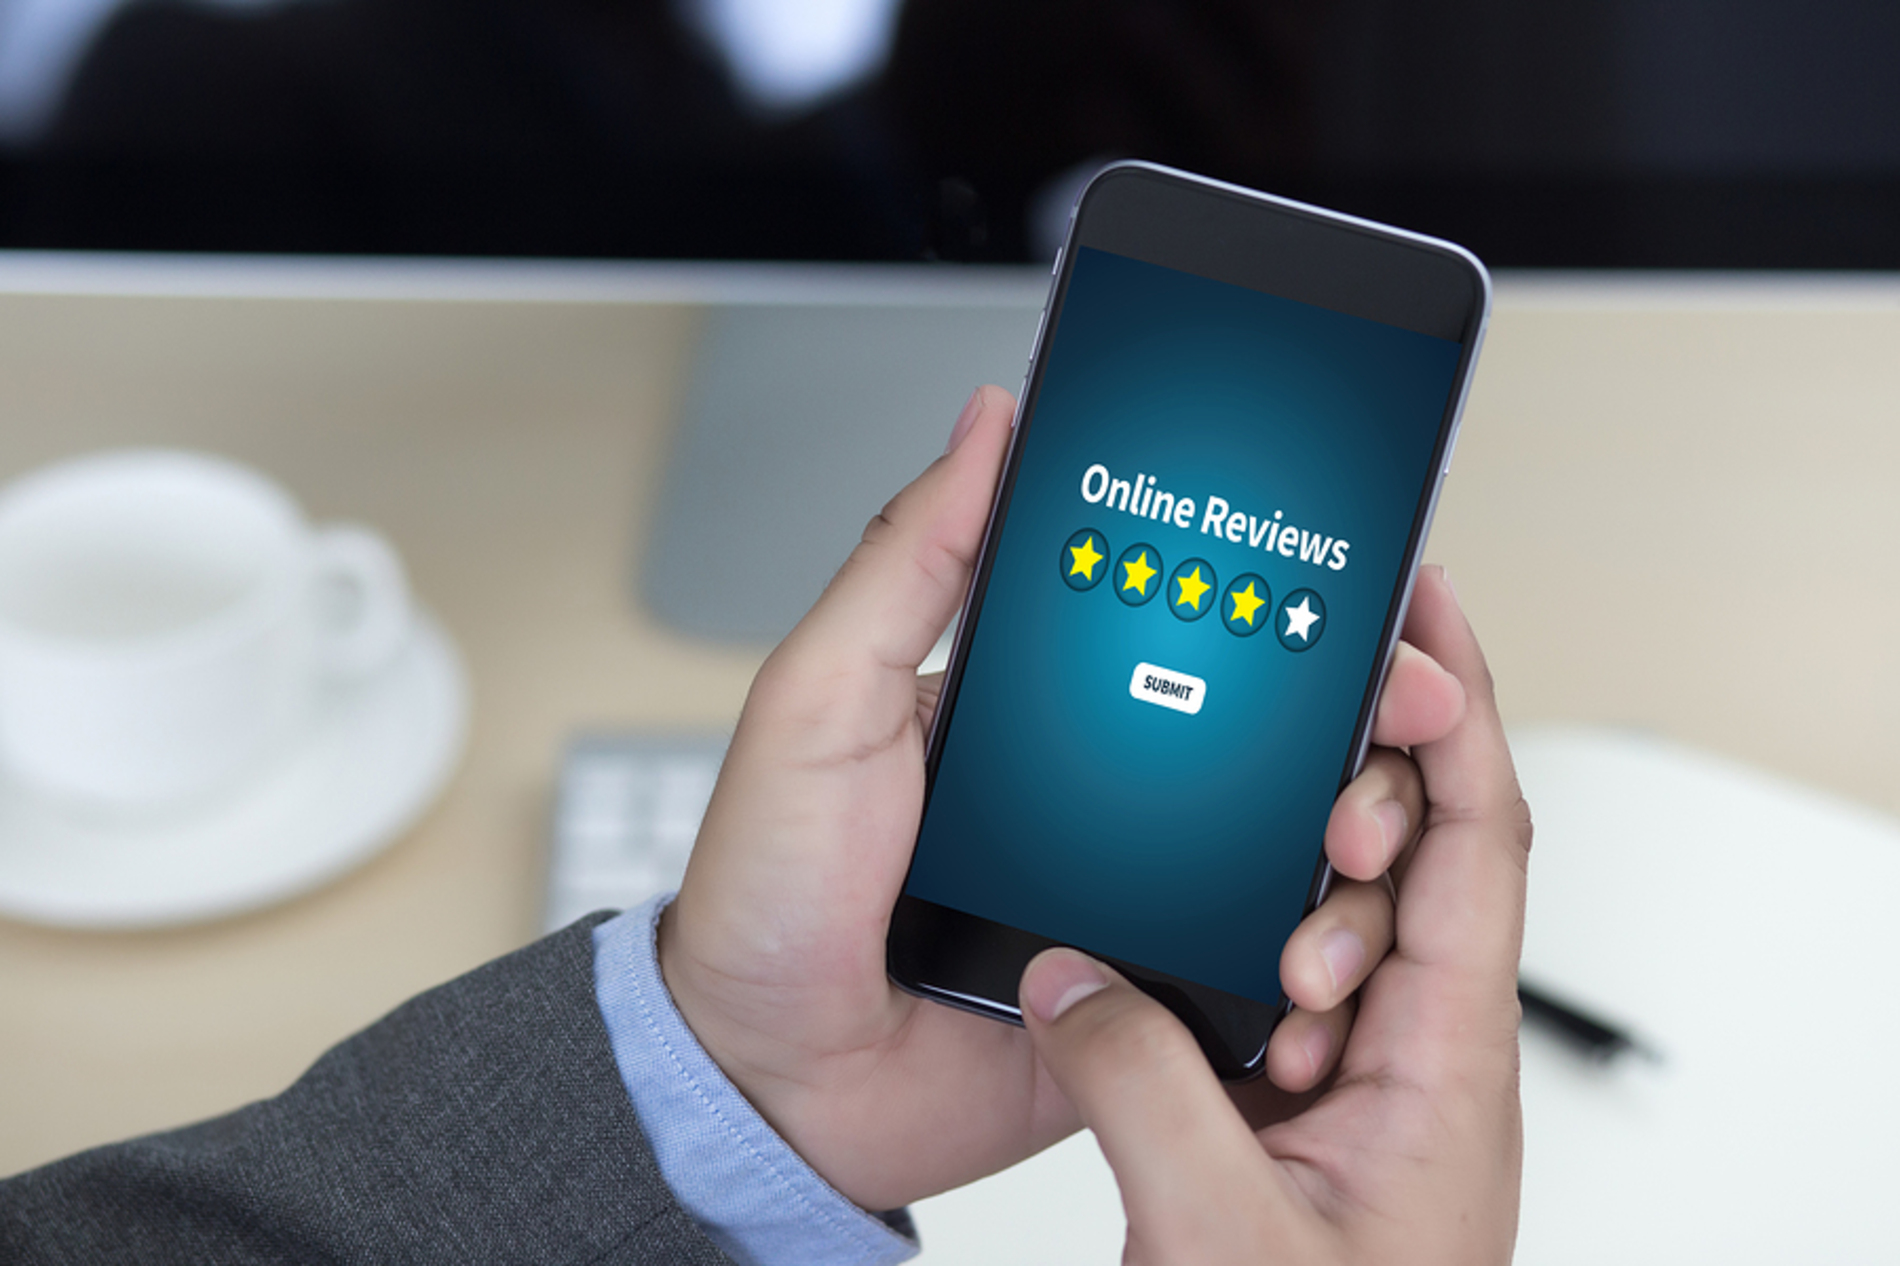 Person completing an online review on their phone.